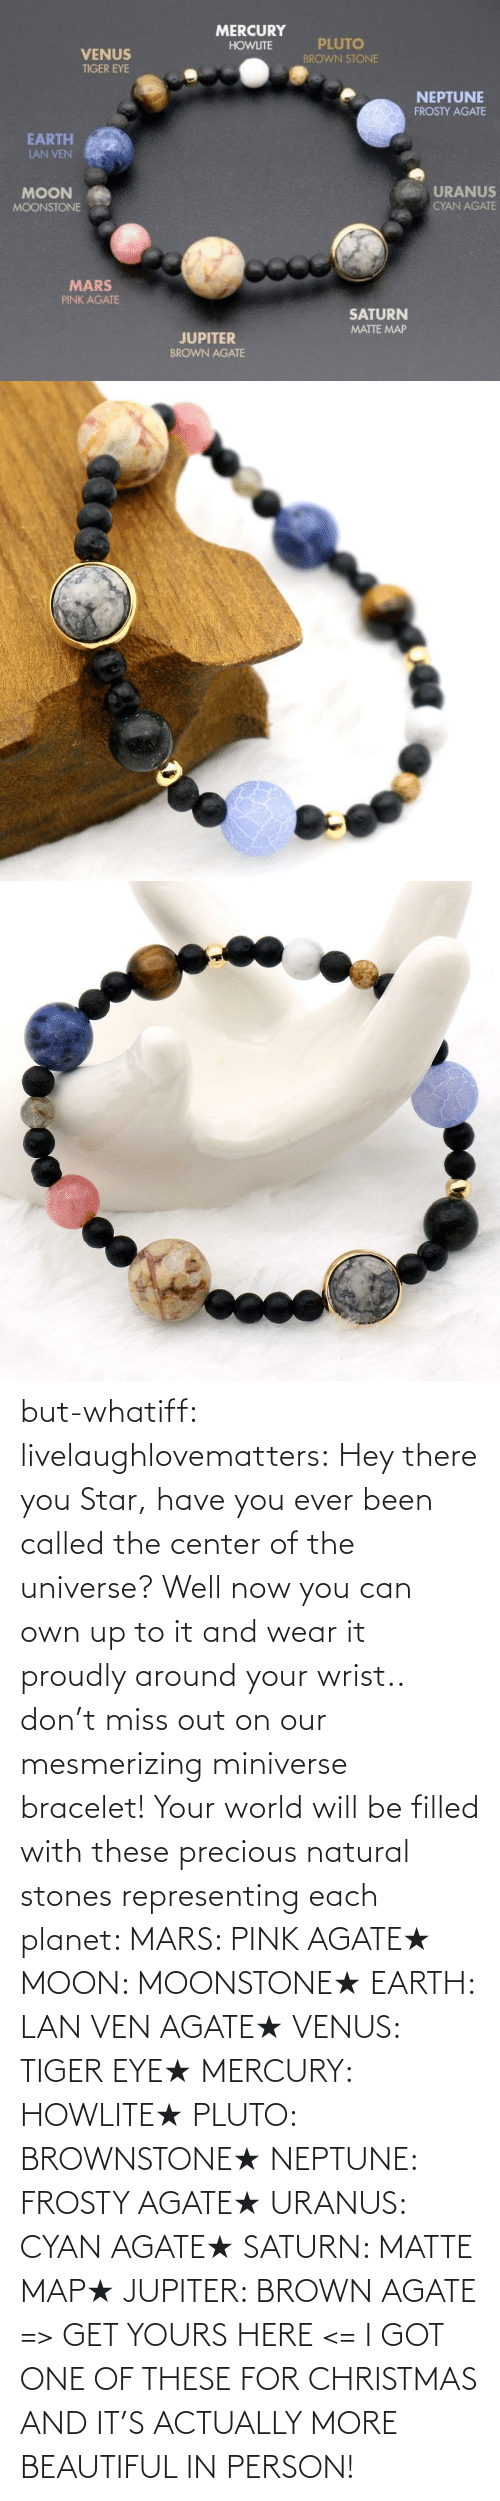 yours: but-whatiff:  livelaughlovematters:  Hey there you Star, have you ever been called the center of the universe? Well now you can own up to it and wear it proudly around your wrist.. don't miss out on our mesmerizing miniverse bracelet! Your world will be filled with these precious natural stones representing each planet:  MARS: PINK AGATE★ MOON: MOONSTONE★ EARTH: LAN VEN AGATE★ VENUS: TIGER EYE★ MERCURY: HOWLITE★ PLUTO: BROWNSTONE★ NEPTUNE: FROSTY AGATE★ URANUS: CYAN AGATE★ SATURN: MATTE MAP★ JUPITER: BROWN AGATE => GET YOURS HERE <=  I GOT ONE OF THESE FOR CHRISTMAS AND IT'S ACTUALLY MORE BEAUTIFUL IN PERSON!